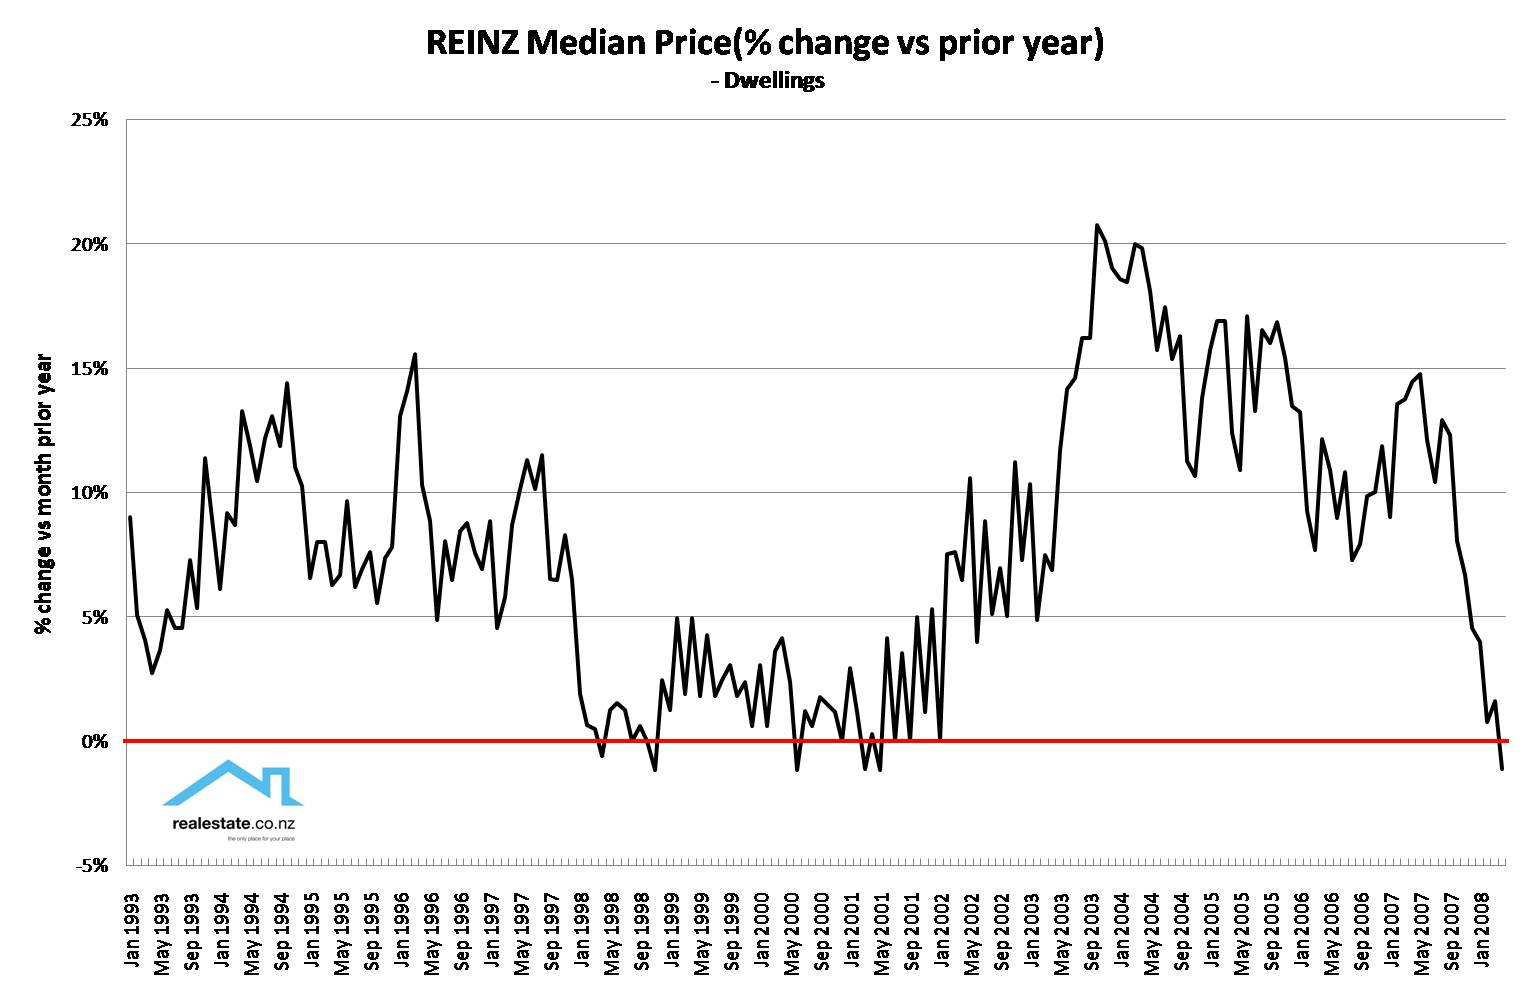 REINZ Monthly median price yr on yr % change 93 to 08